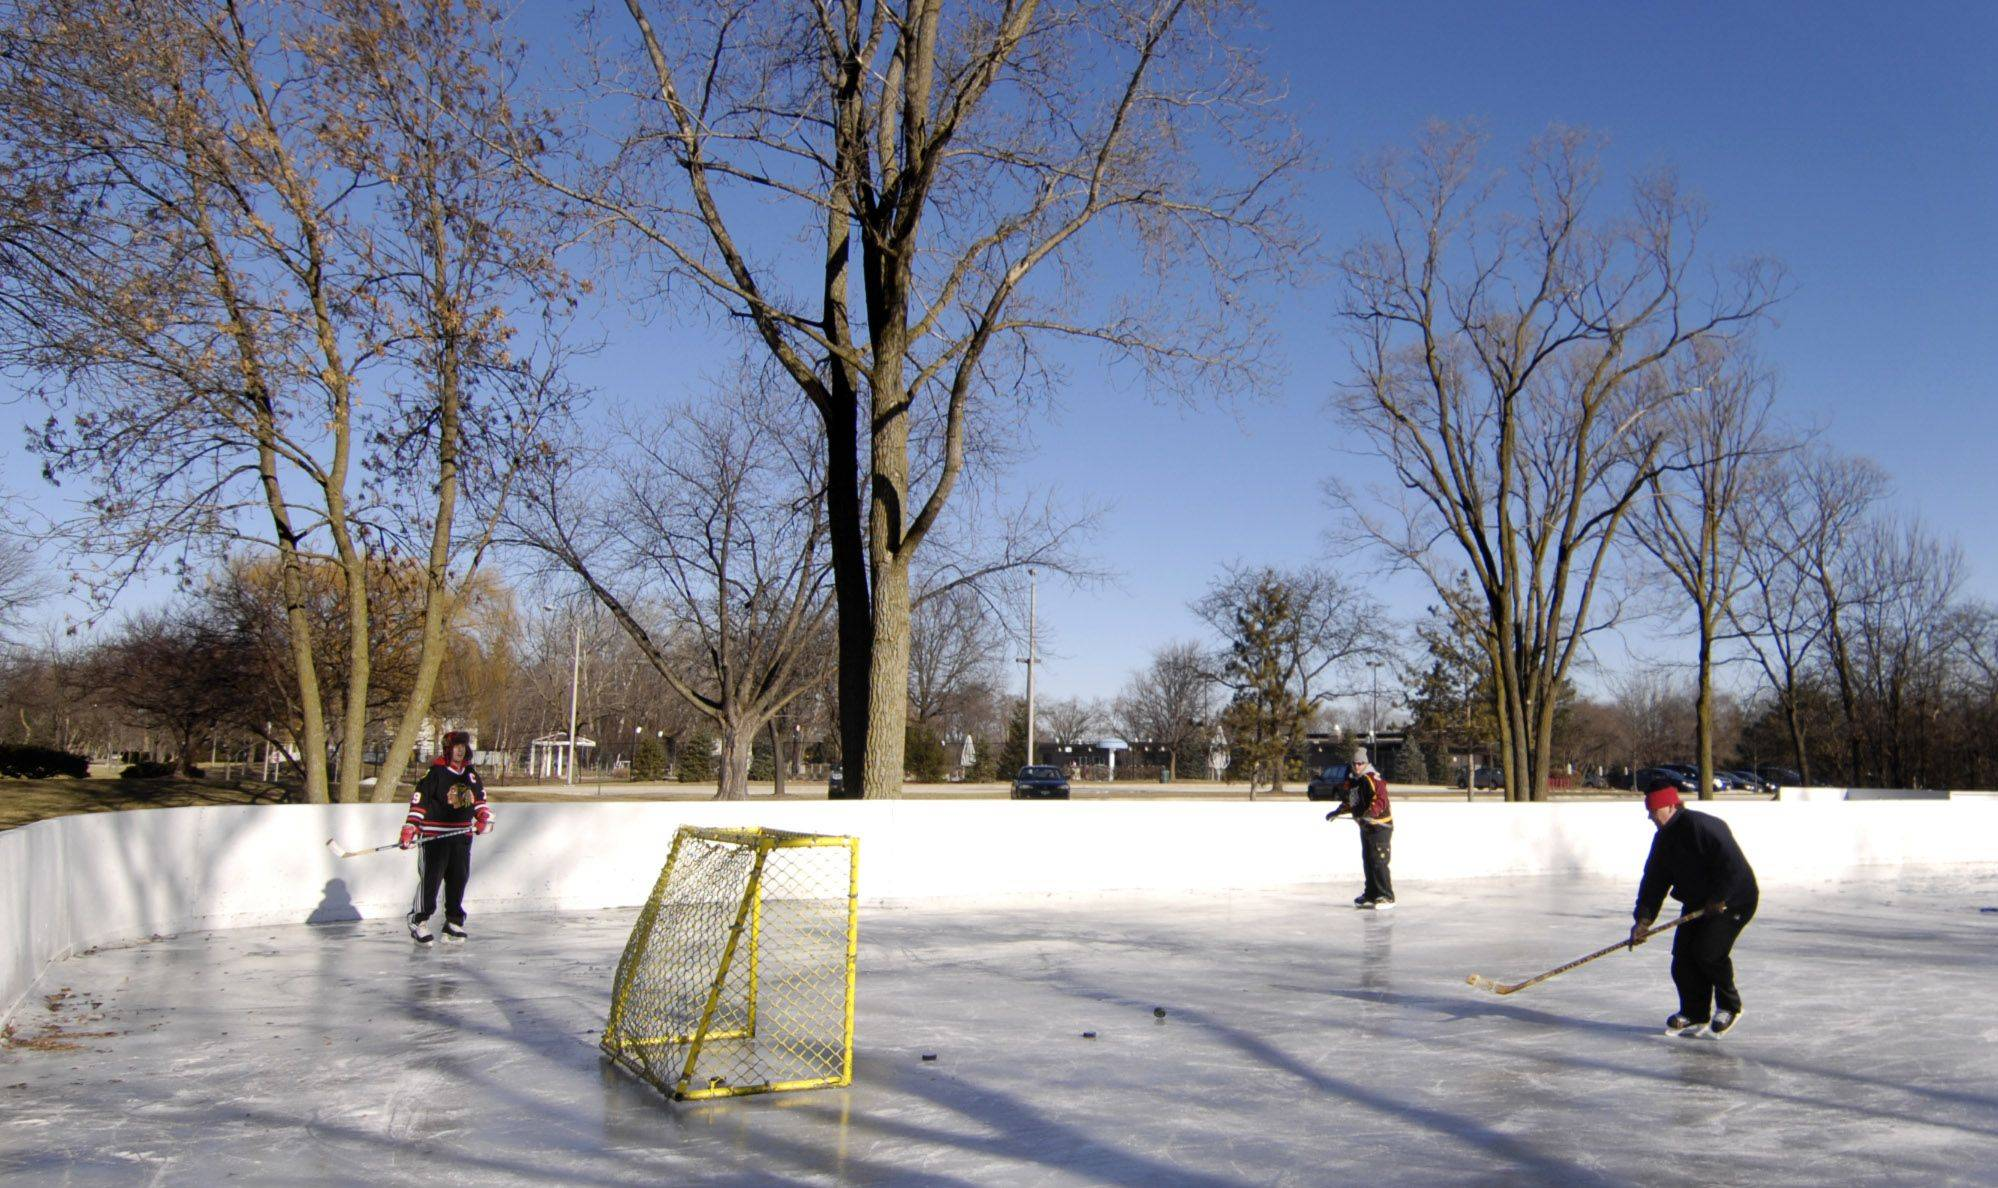 Chris Poznanski of Palatine, Phil Howe of Palatine and Dave Janson of Arlington Heights play some hockey at Frontier Park in Arlington Heights.